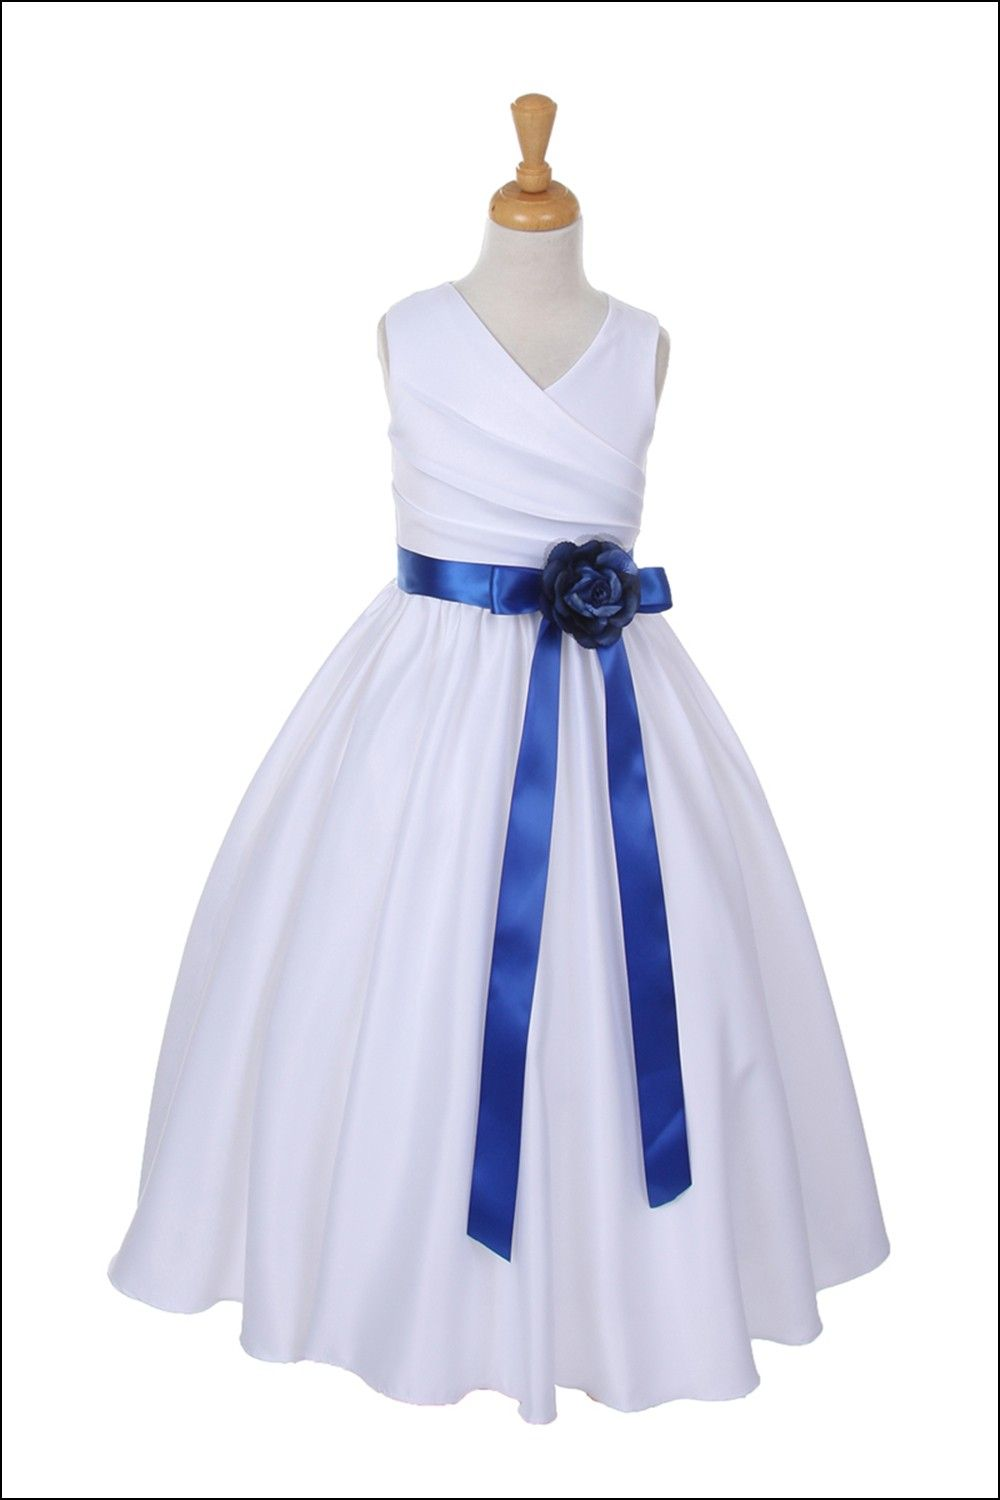 Flower girl dresses with royal blue sash dresses and gowns ideas